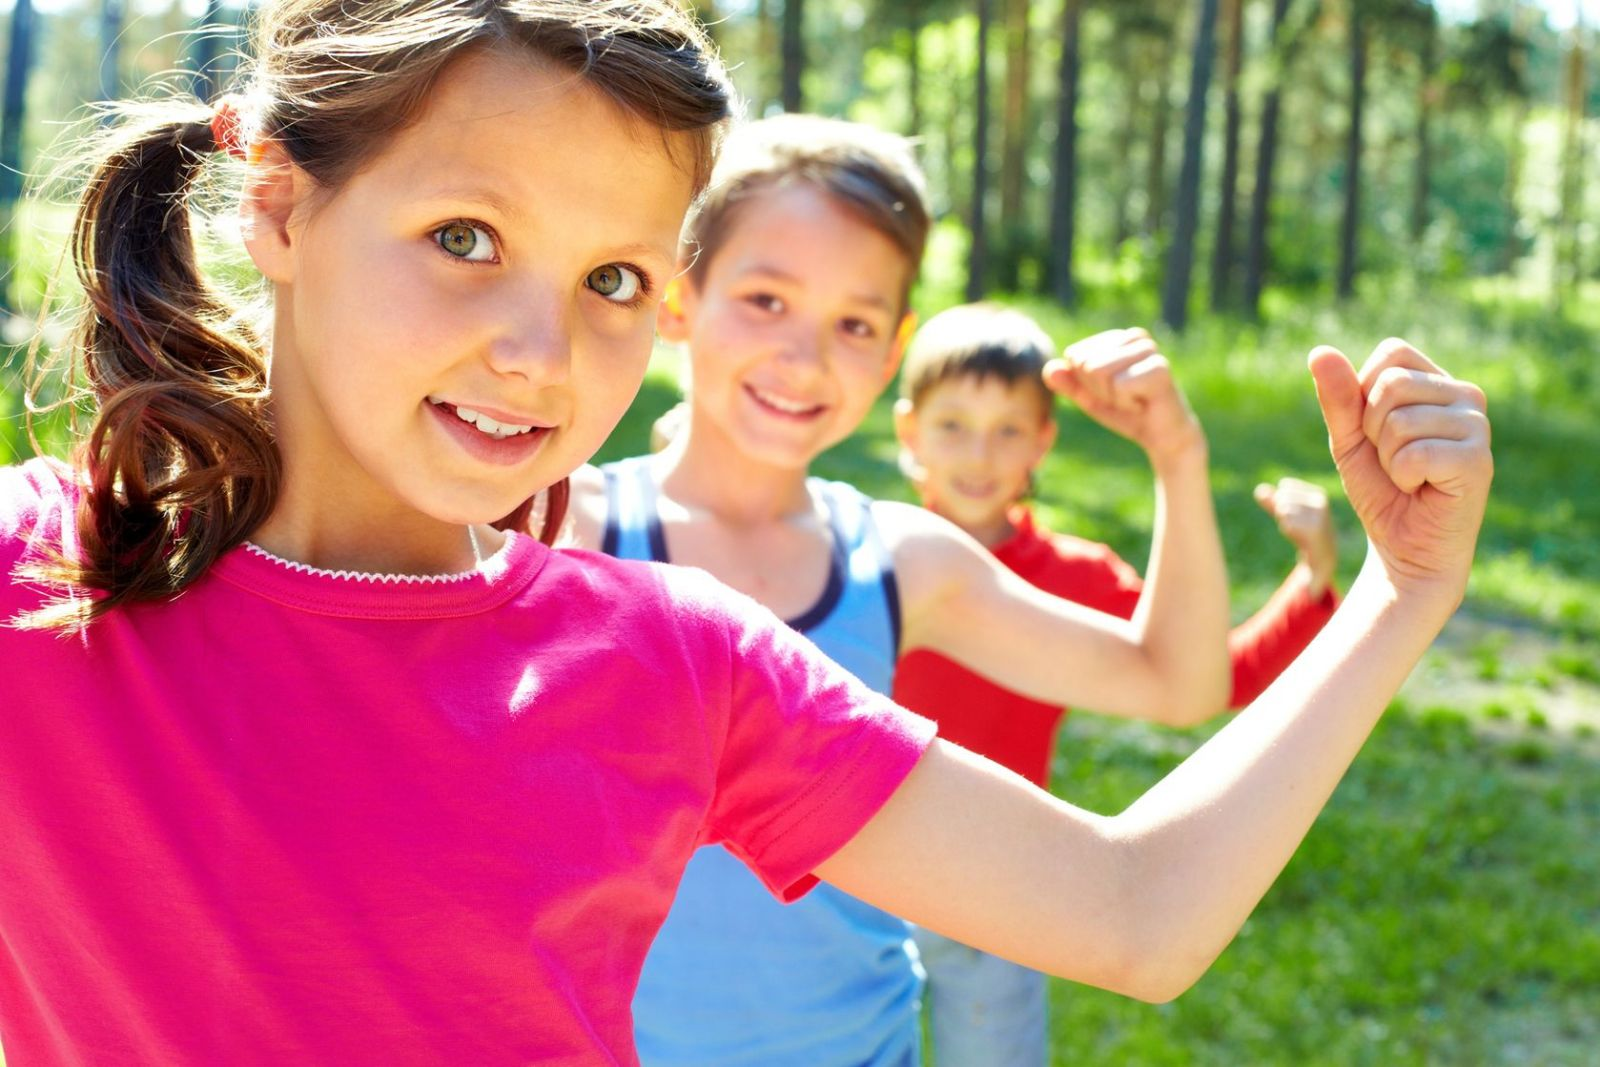 KIDS-VisionSmart-helps-keep-kdis-healthy-during-the-summer